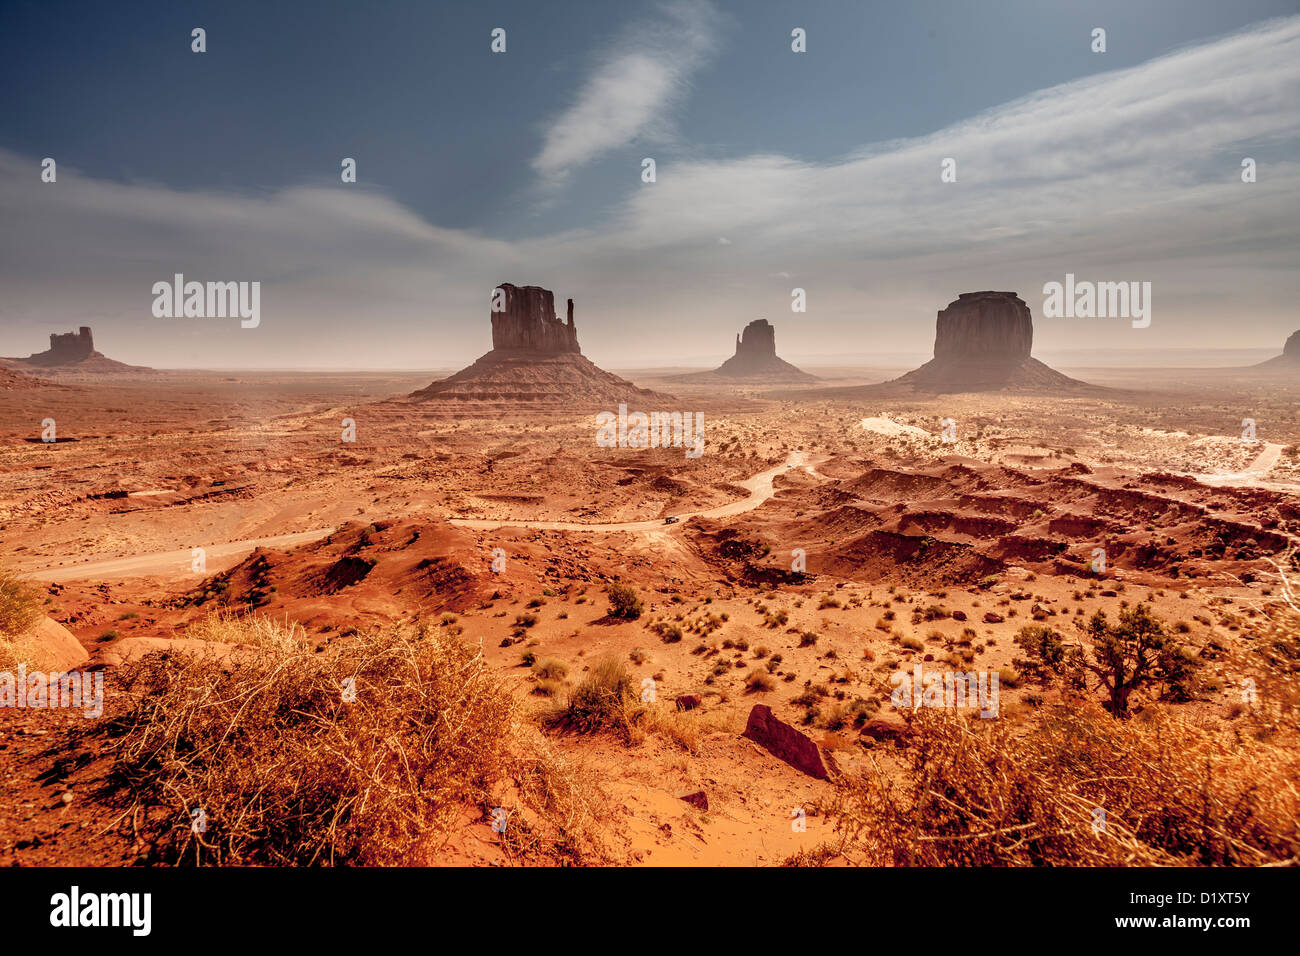 Monument Valley in the Navajo Tribal Park - Stock Image